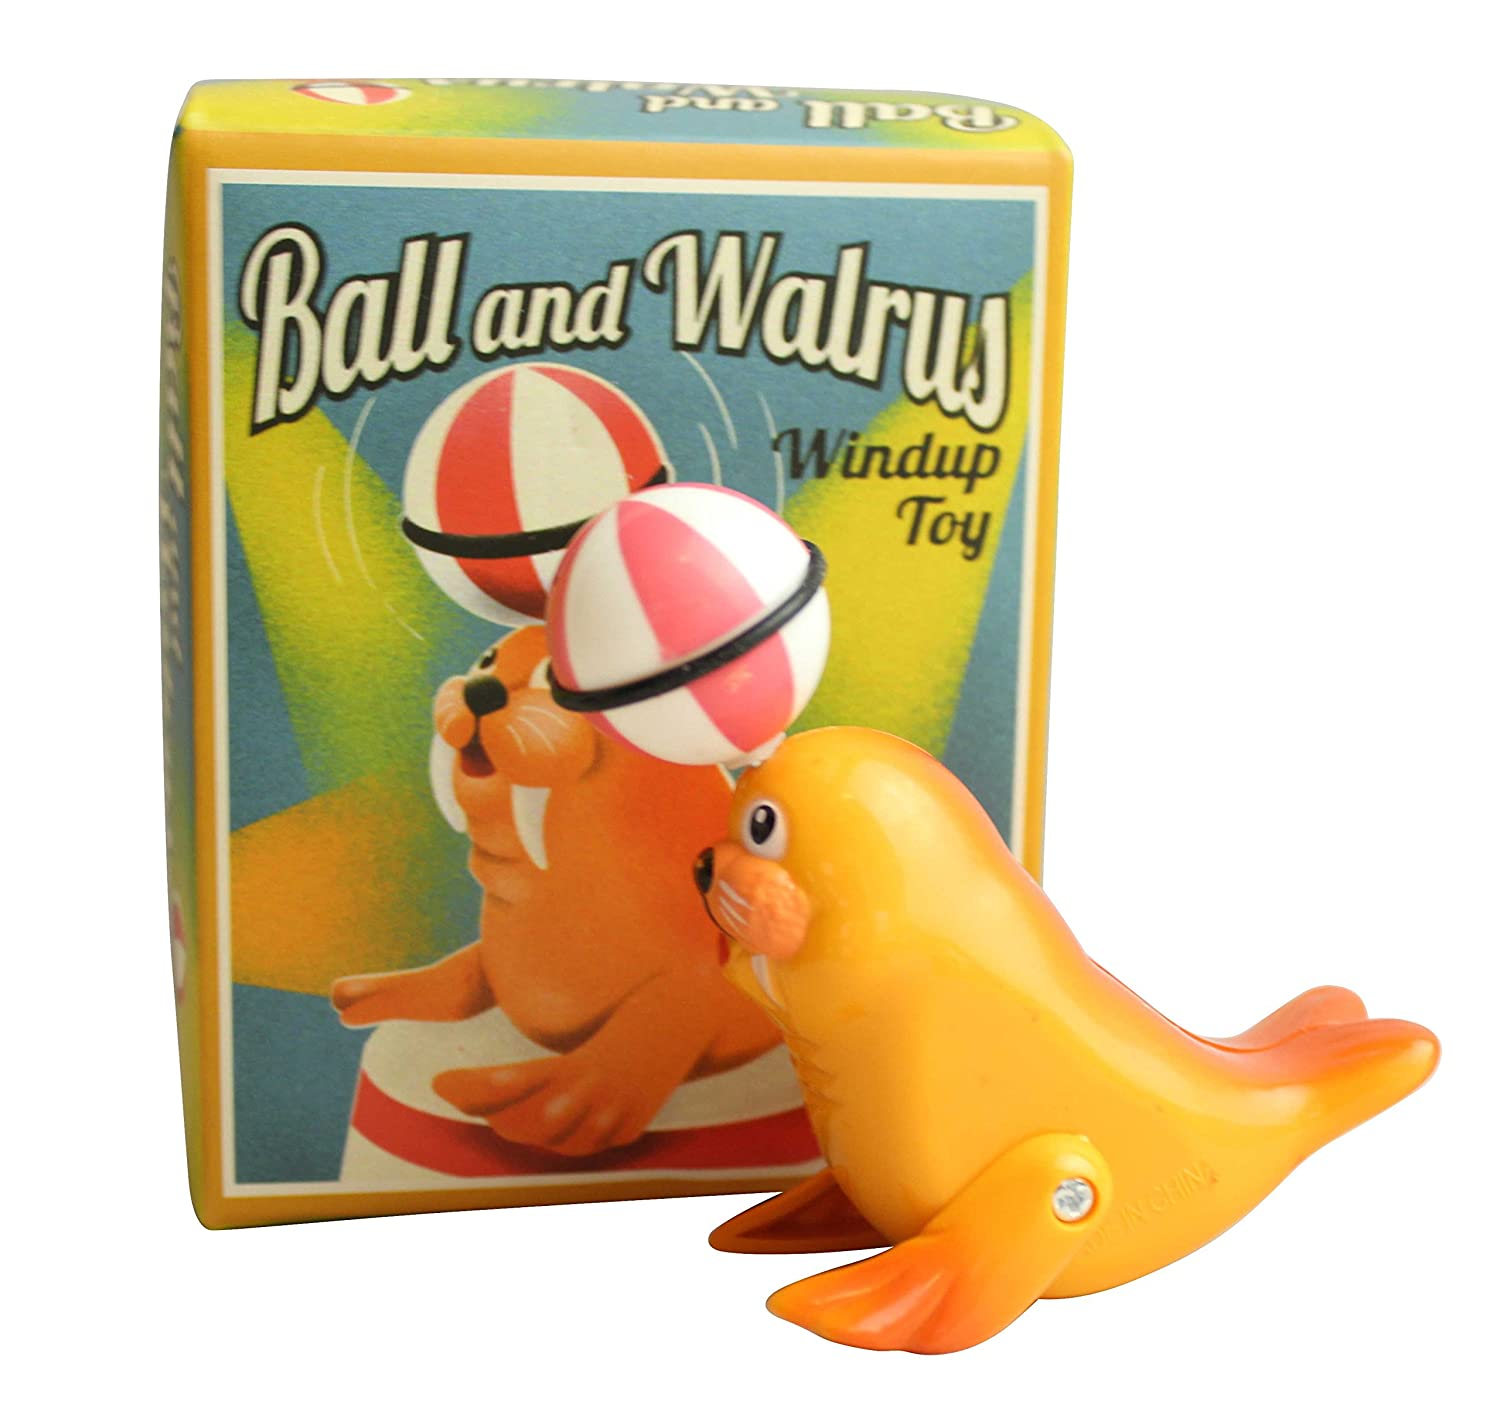 Ball & Walrus Windup Retro Toy Classic Game Circus Entertainer House of Marbles by House of Marbles B00I2T7Q5S